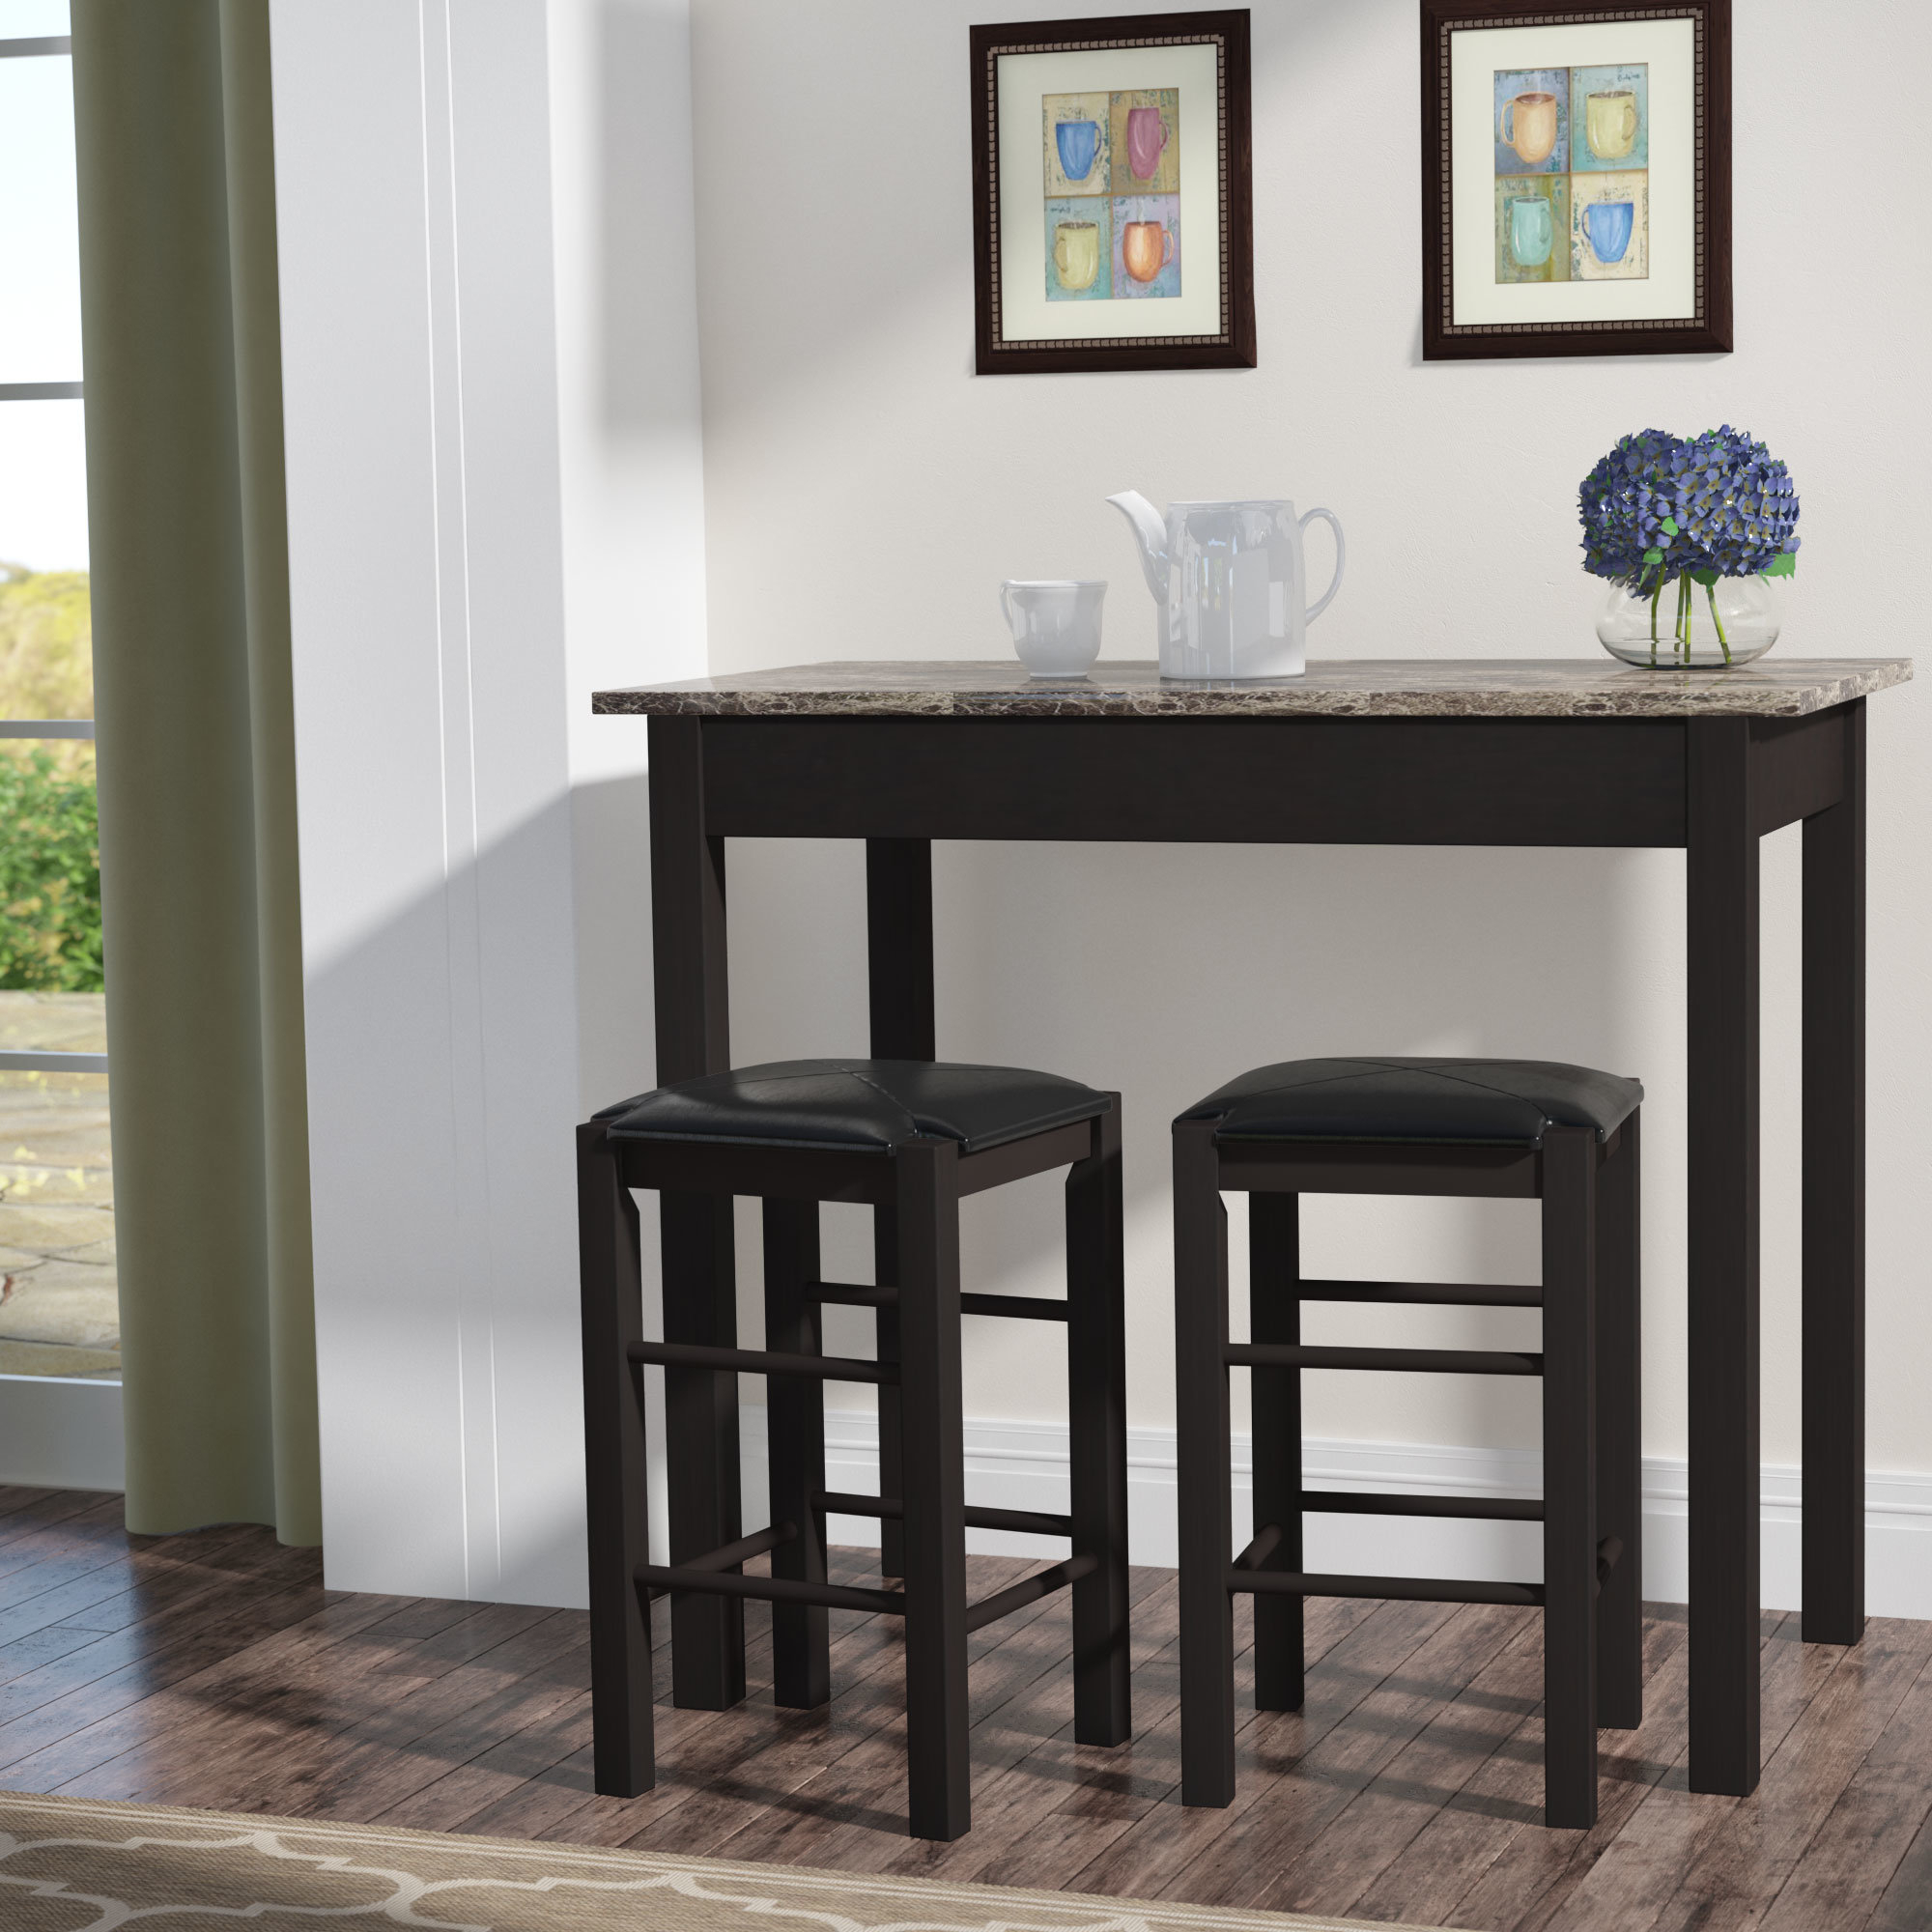 Bettencourt 3 Piece Counter Height Solid Wood Dining Sets Pertaining To 2017 Sheetz 3 Piece Counter Height Dining Set (View 4 of 20)